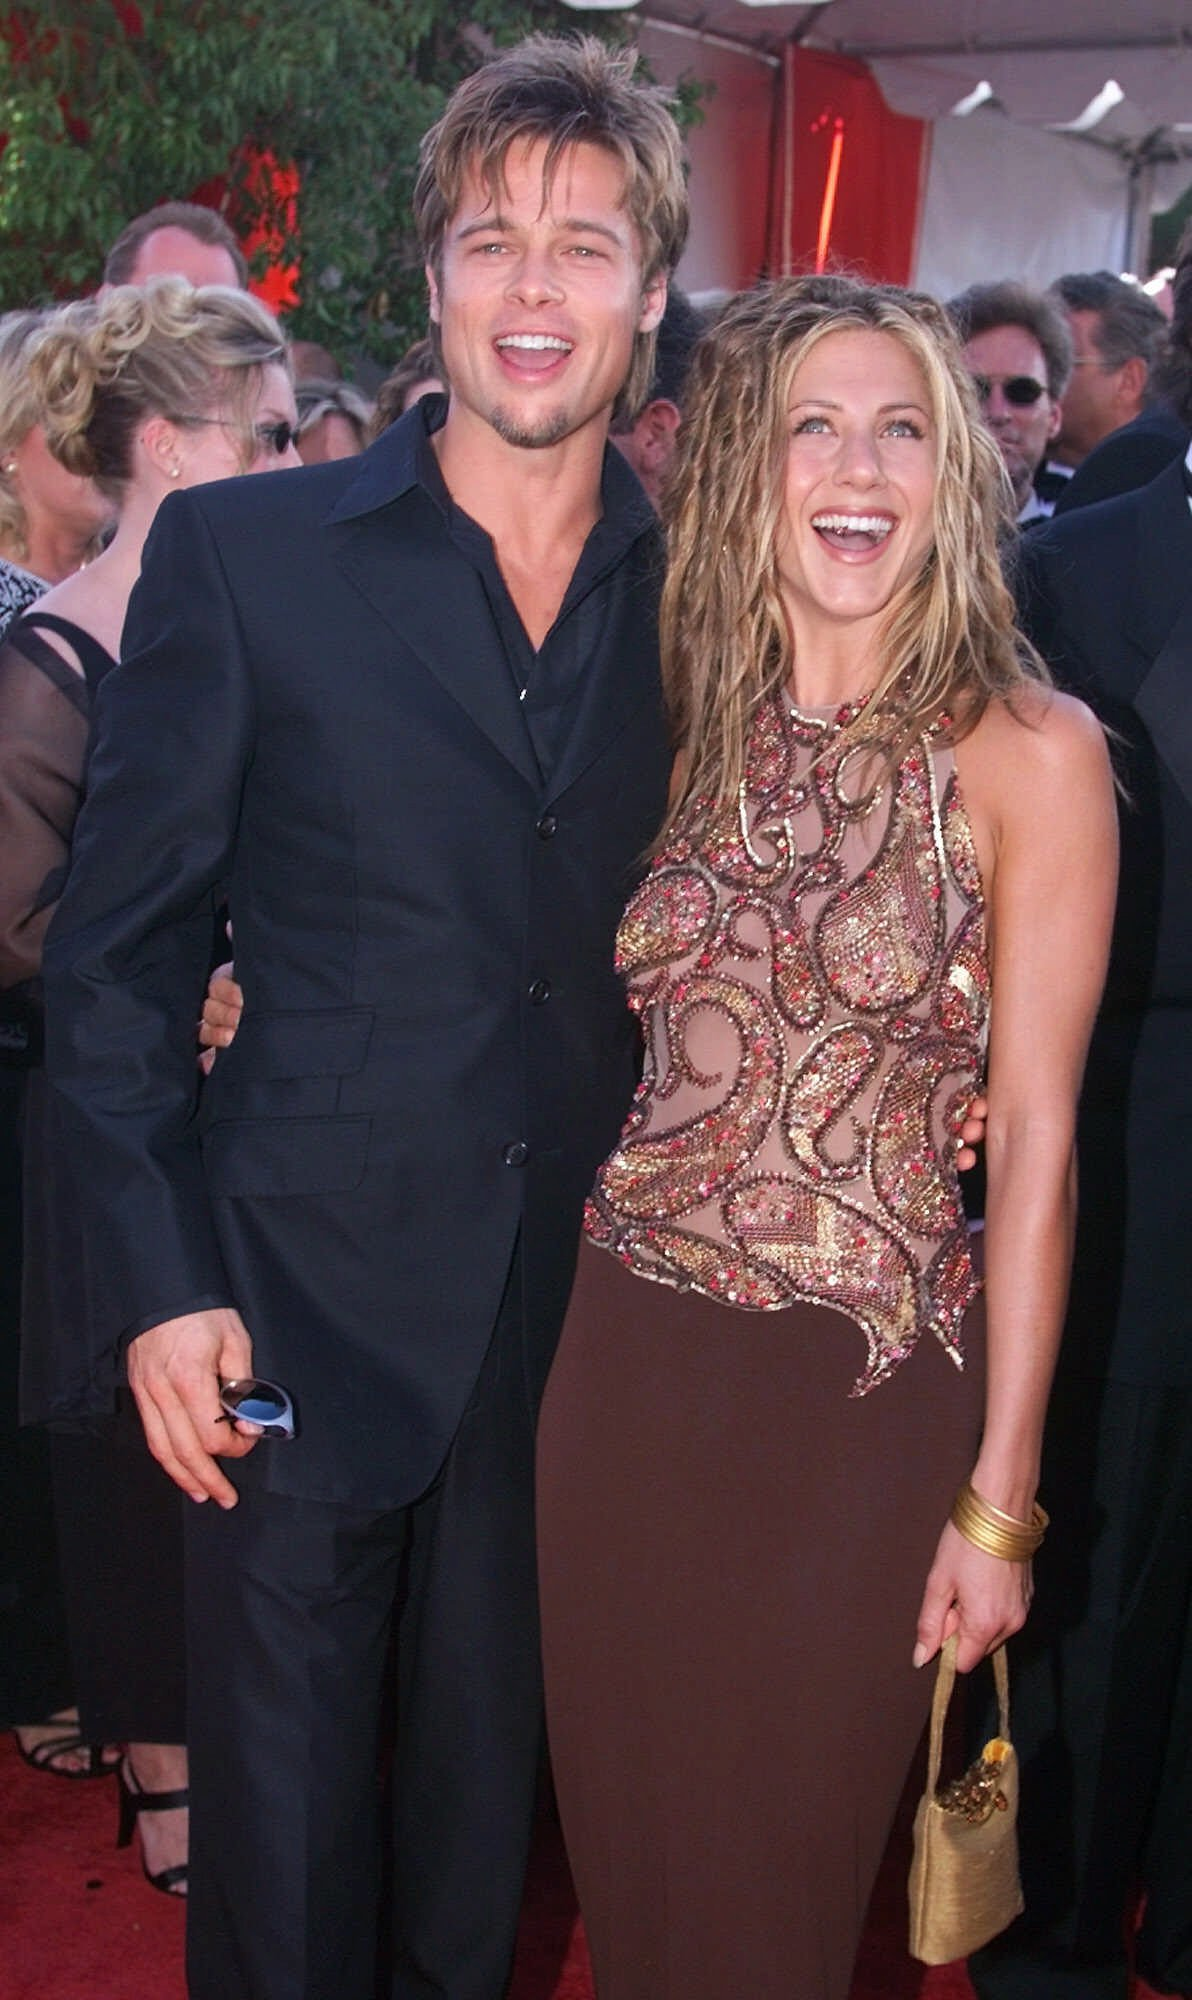 Brad Pitt and Jennifer Aniston arrive for the 51st Annual Primetime Emmy Awards at the Shrine Auditorium in Los Angeles on Sept. 12, 1999.